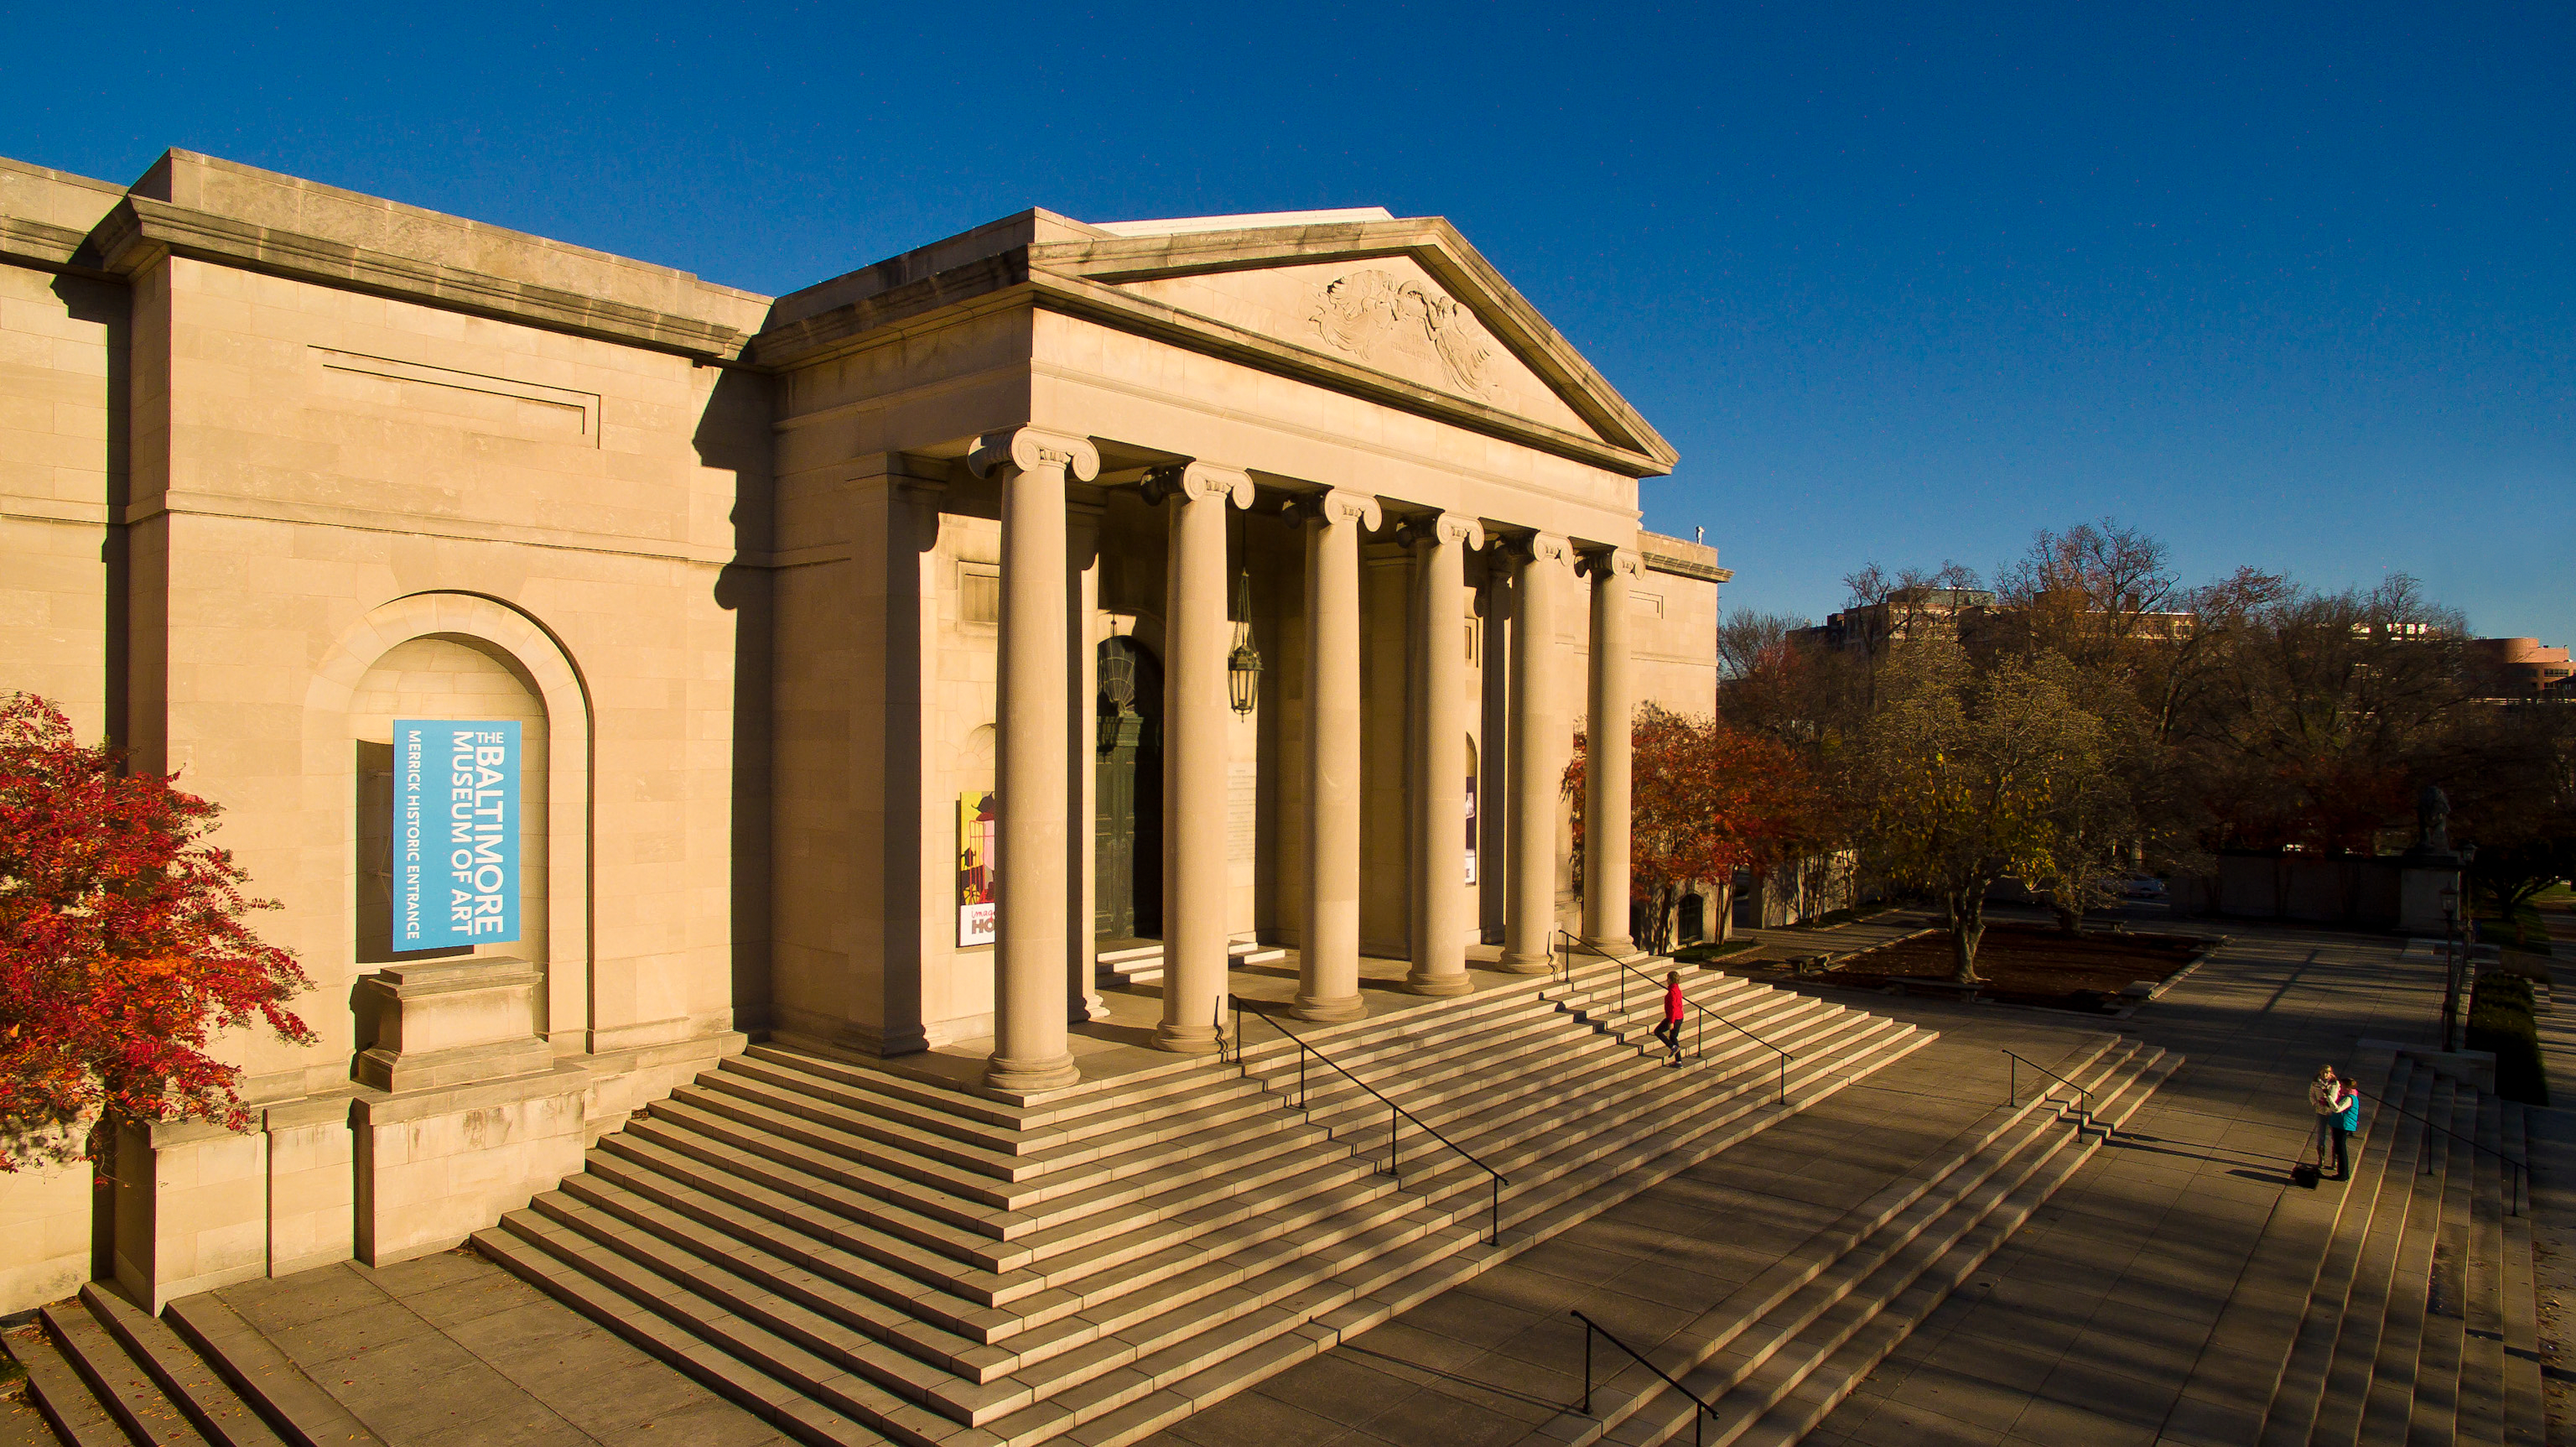 Exterior of a classical style building with ionic columns and two sets of stairs.